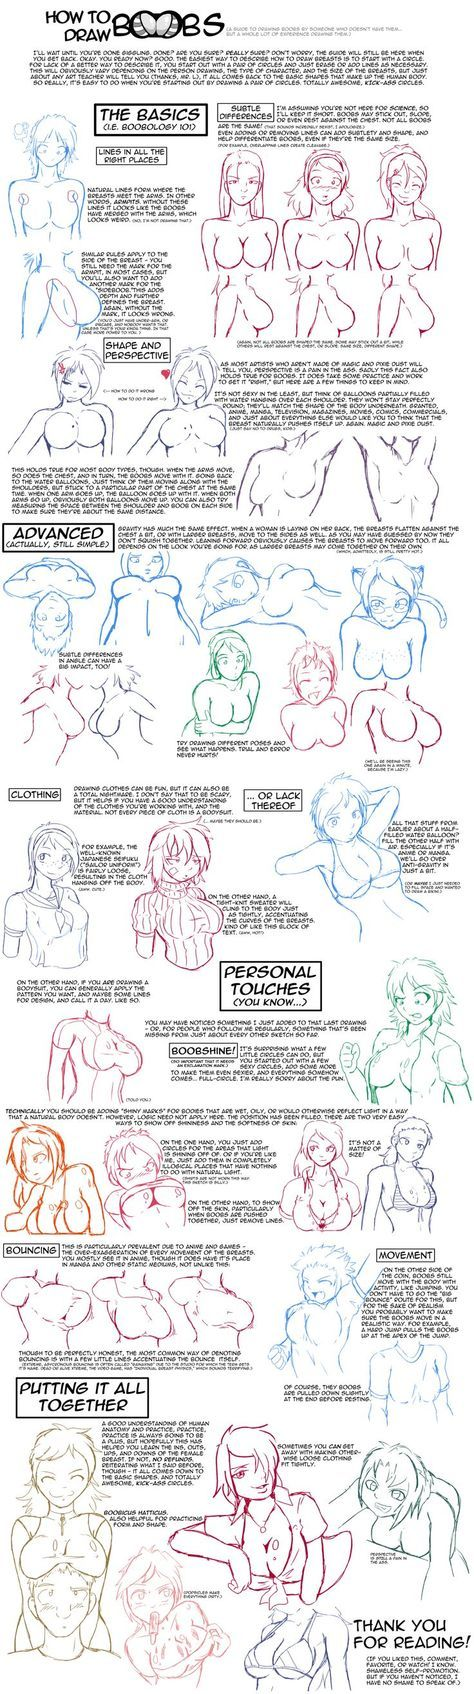 How to Draw Boobs by ragingtofu.deviantart.com had to lol but it might be useful to an artist out there: